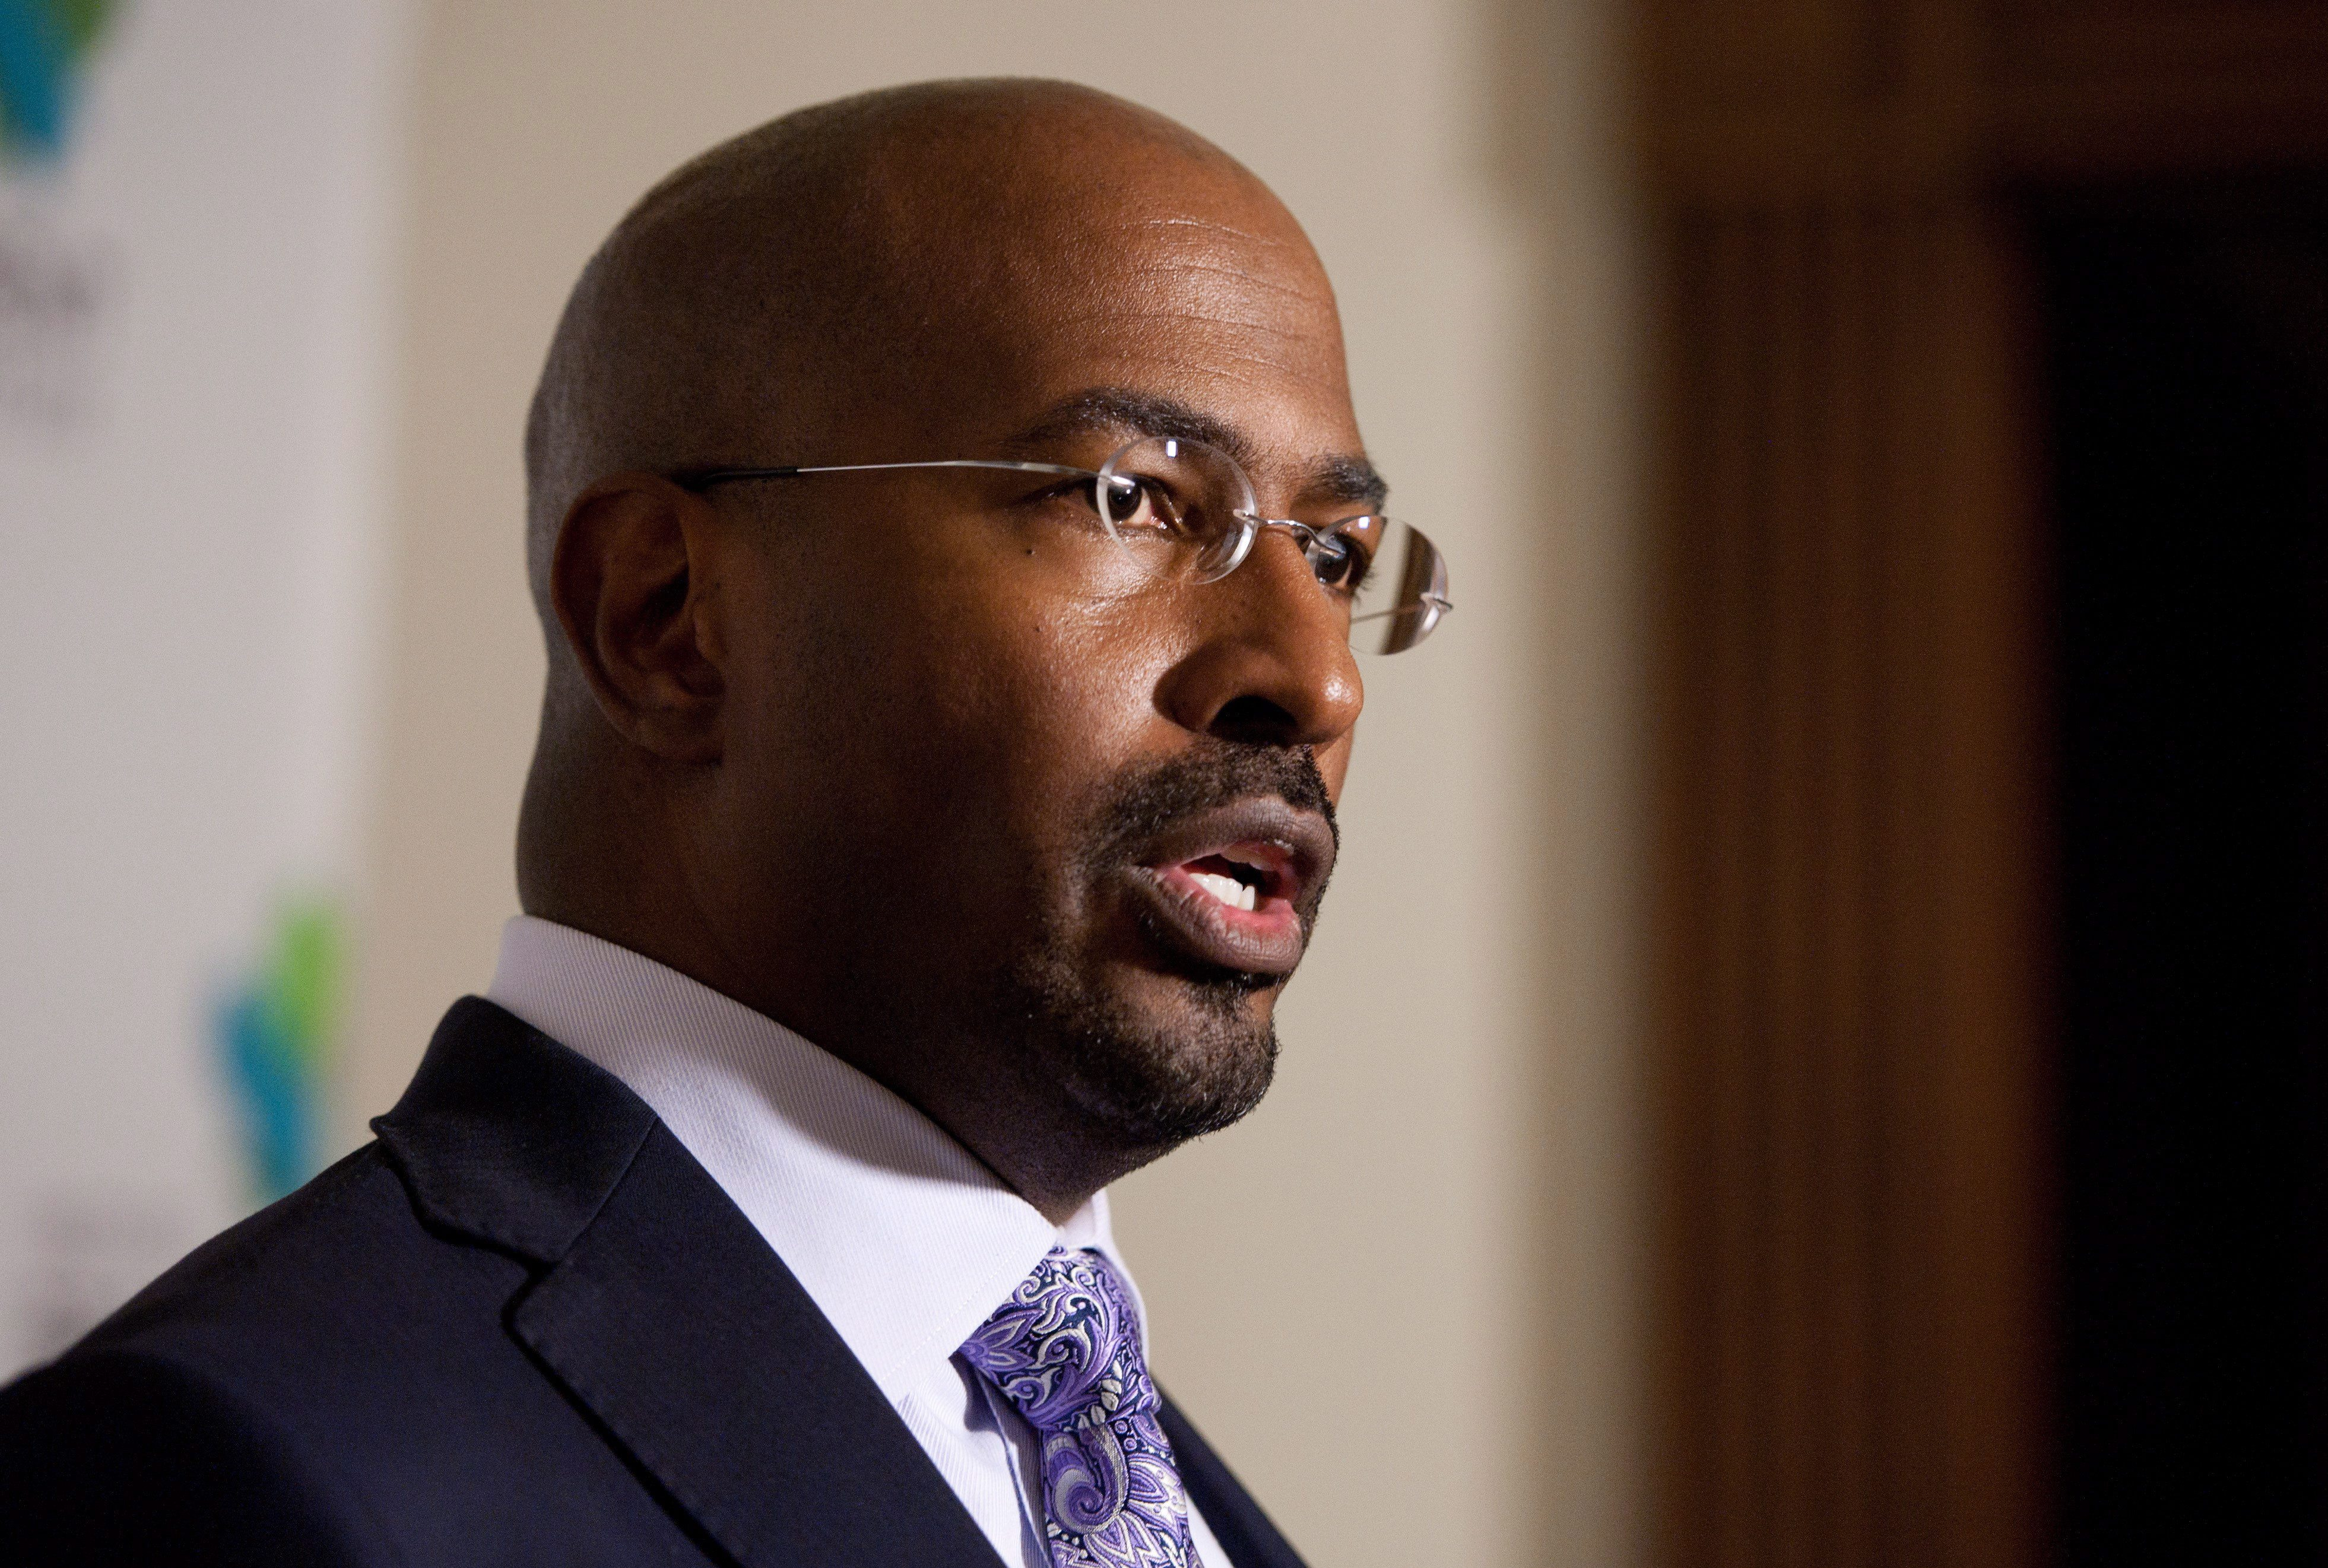 CNN political contributor Van Jones answered questions in advance of a ...